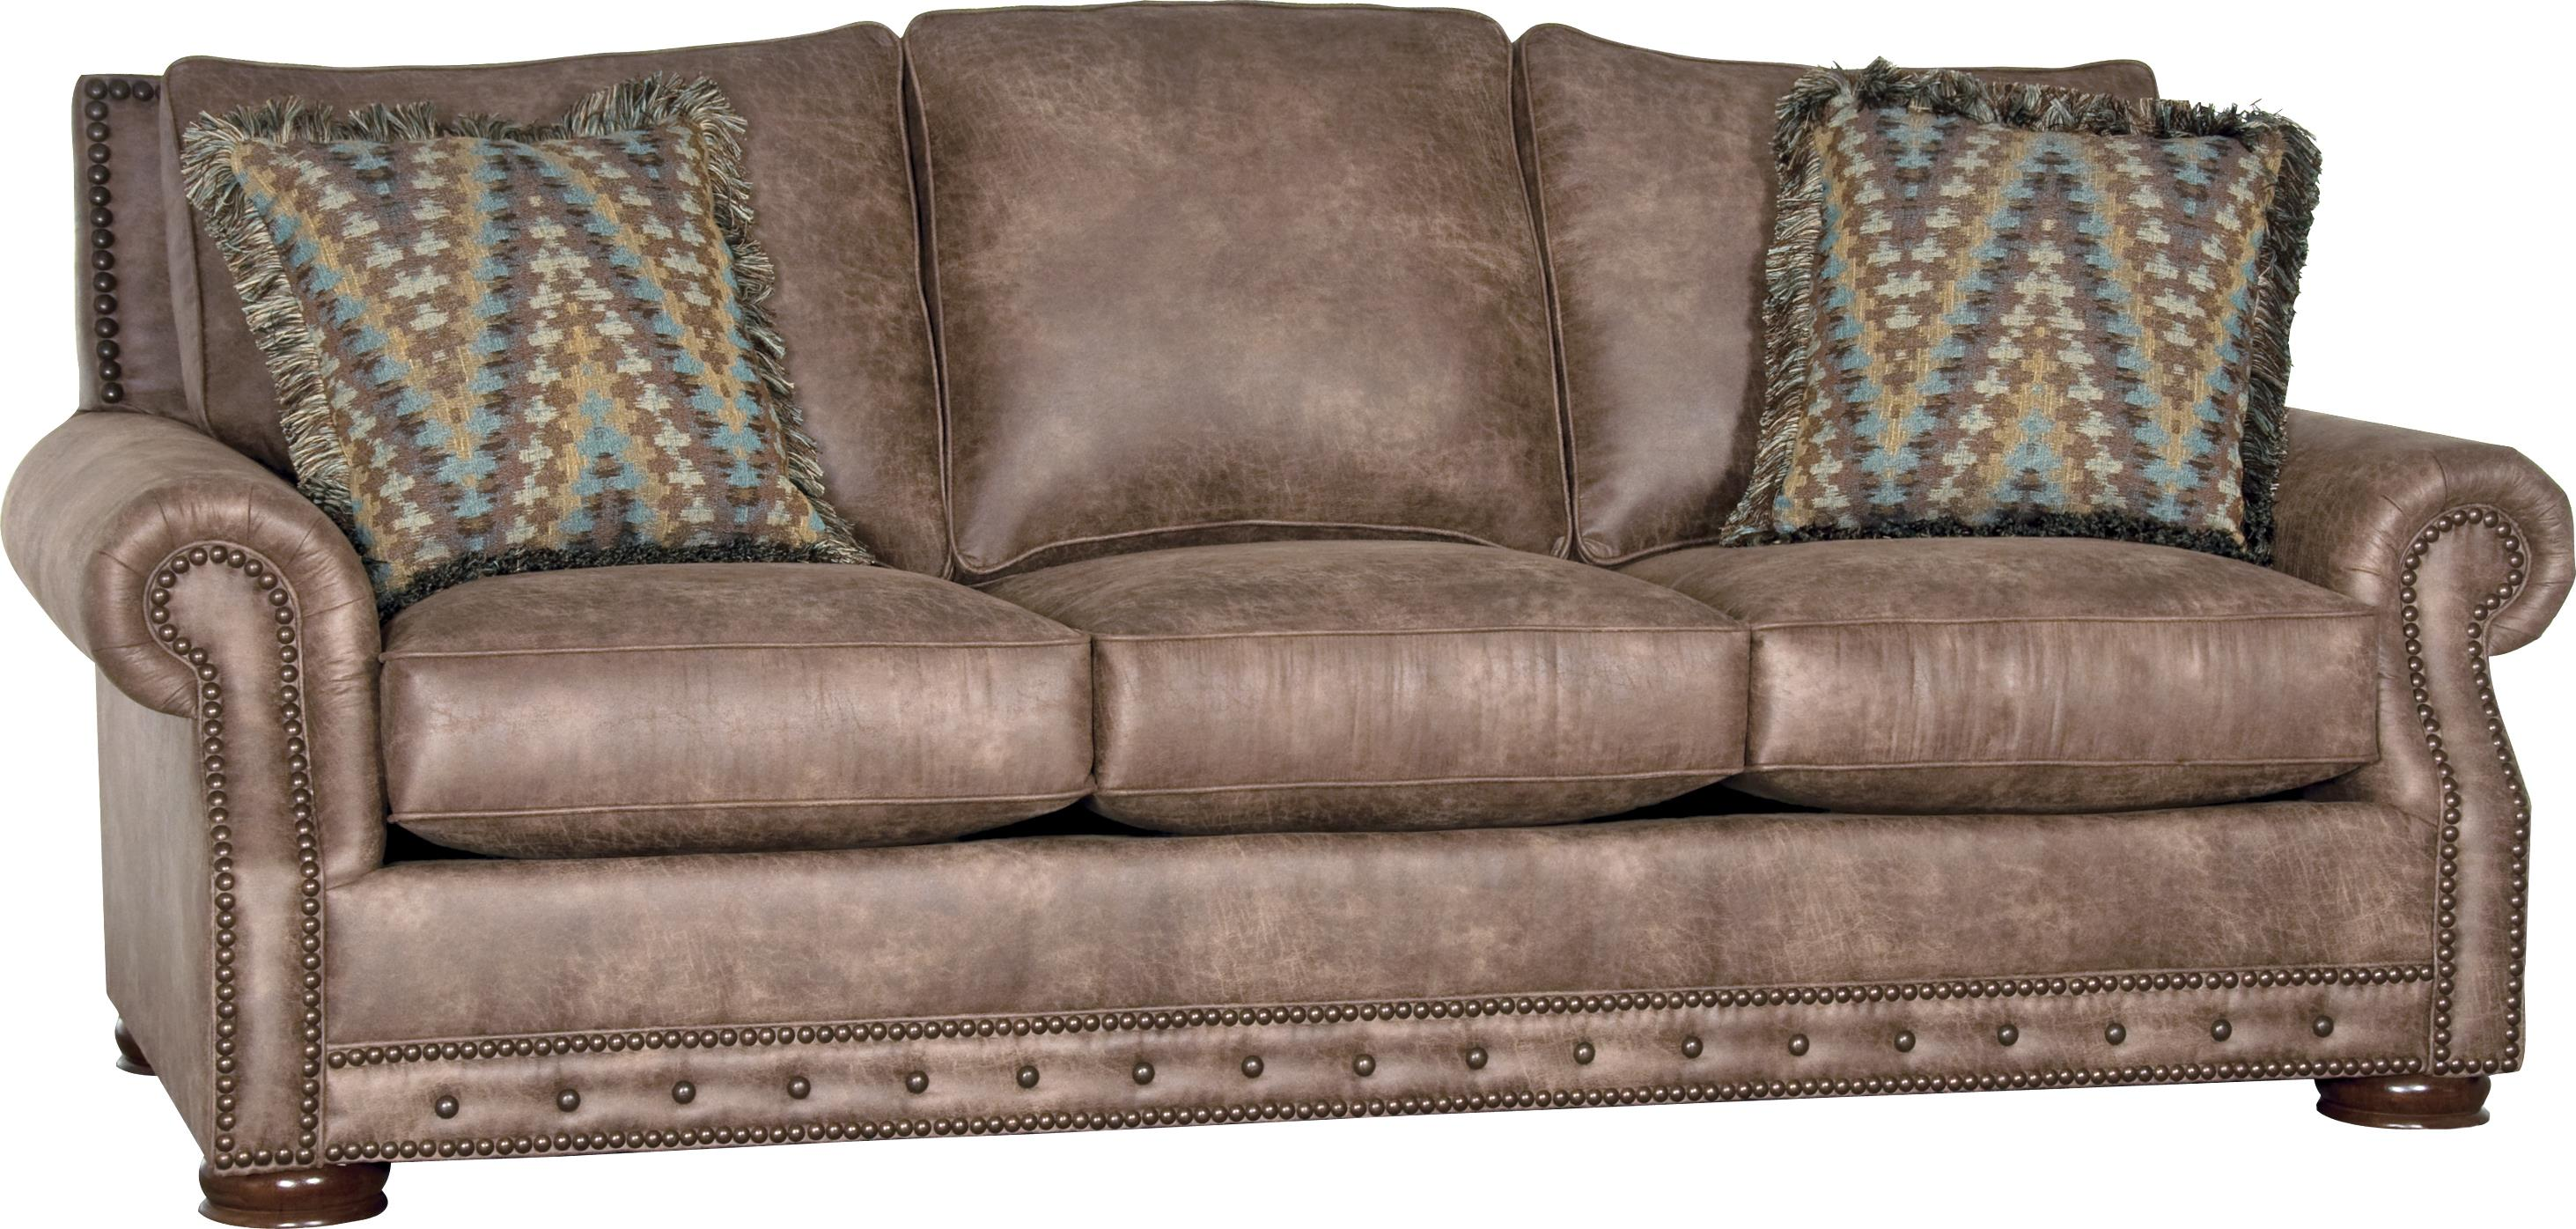 rolled arm sofa with nailhead trim tan leather in living room mayo 2900 w olinde 39s